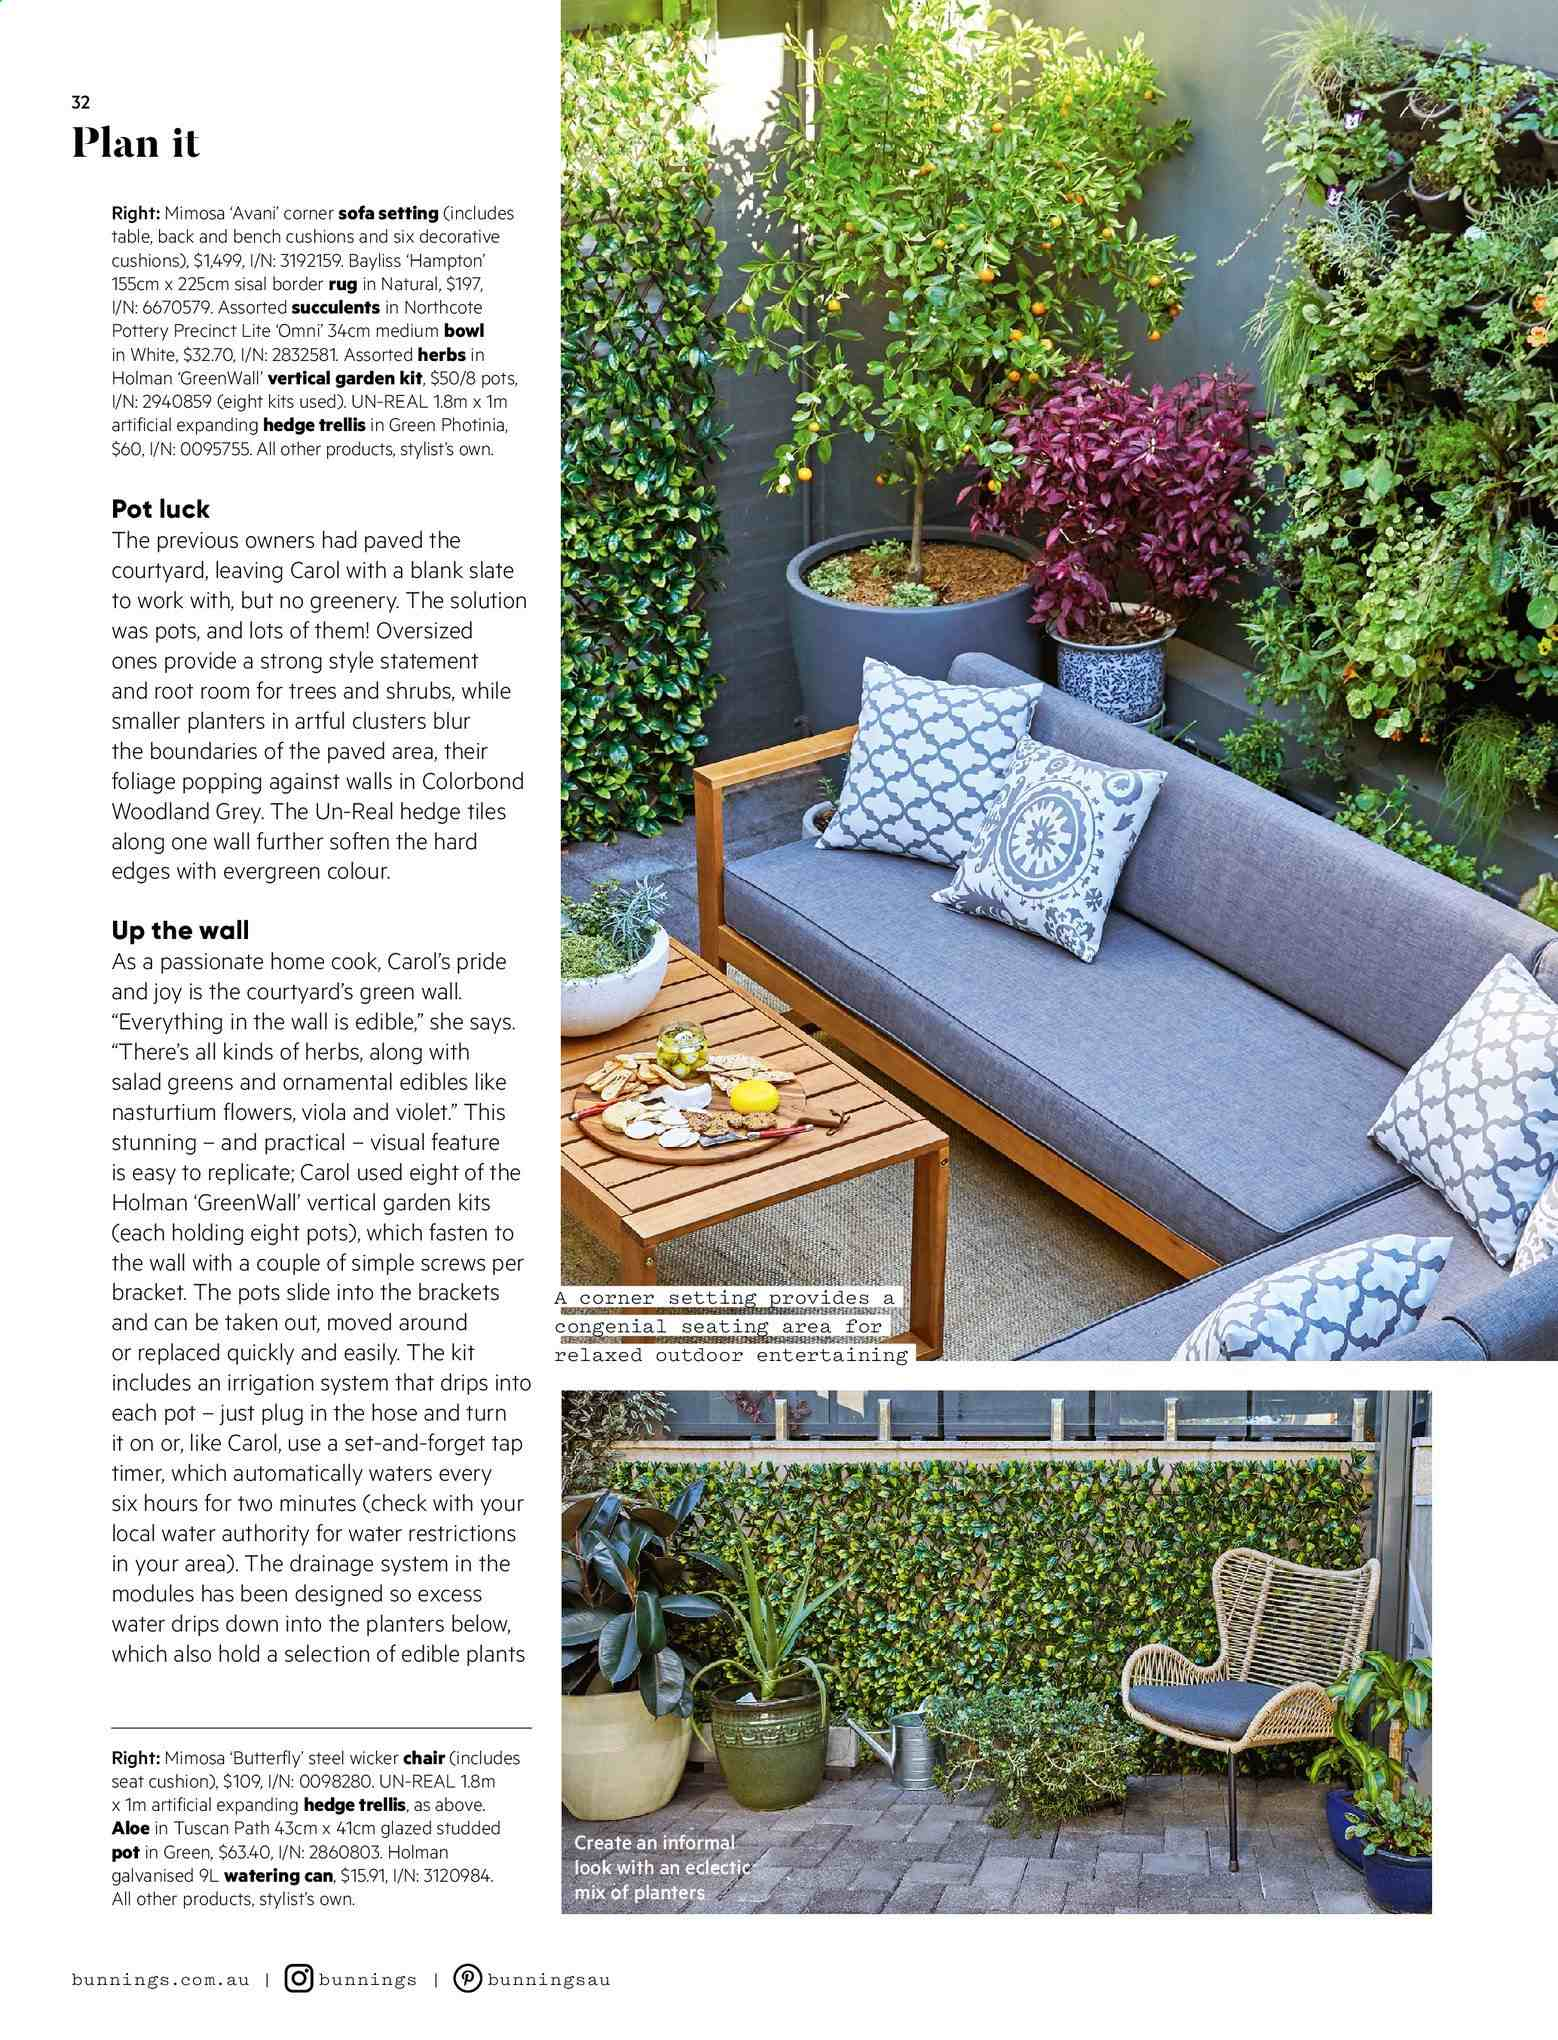 Remarkable Bunnings Warehouse Catalogue And Weekly Specials 1 9 2019 Gmtry Best Dining Table And Chair Ideas Images Gmtryco